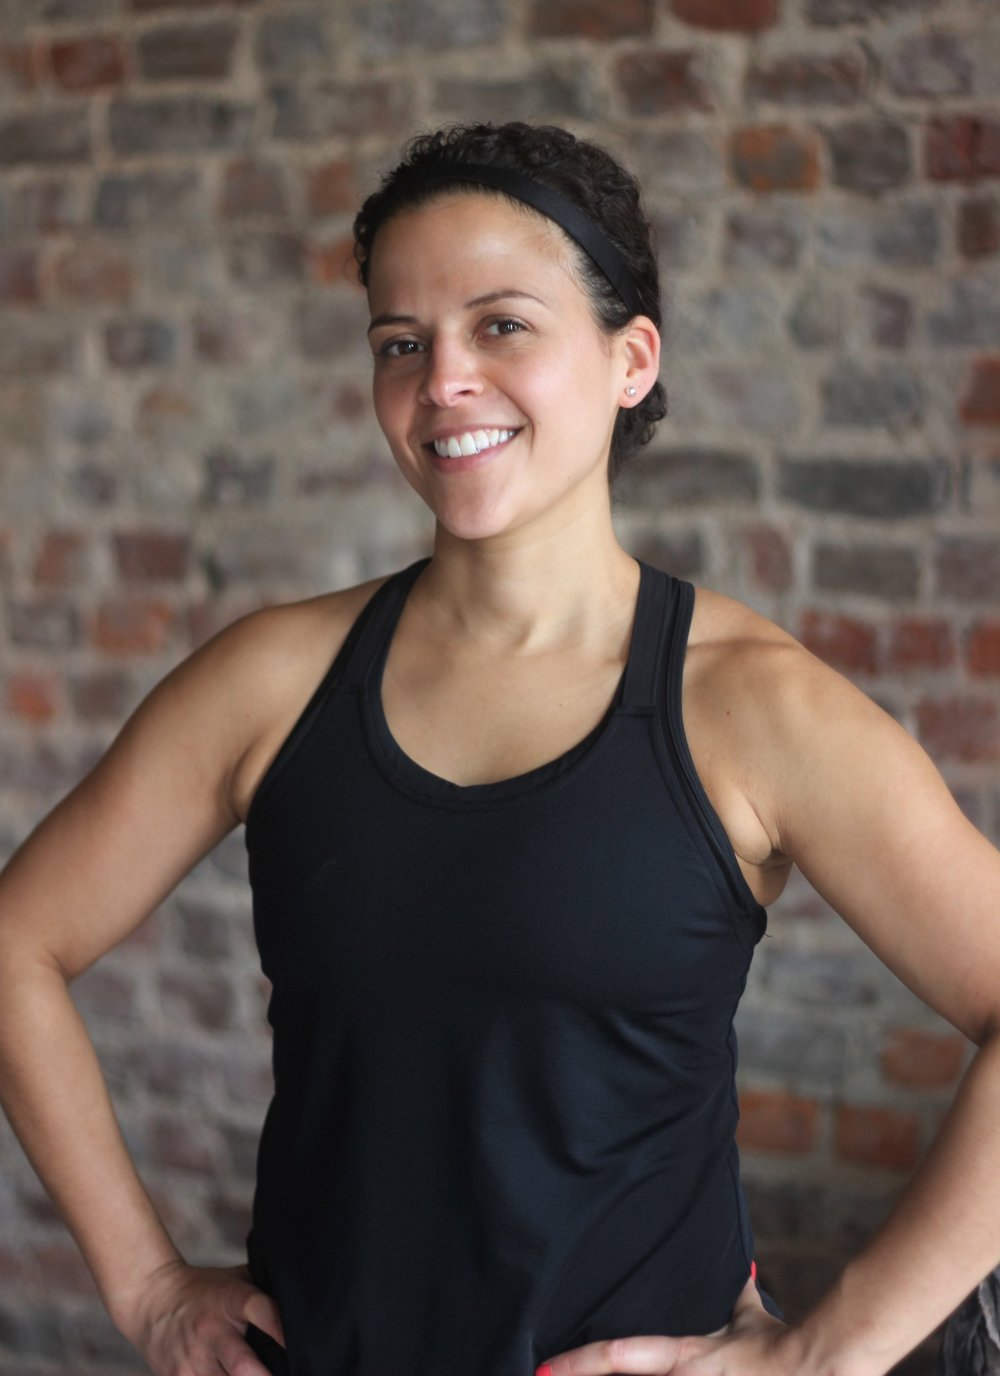 """Emily Bishop - A self-described """"late bloomer"""" to fitness who found big-name gyms intimidating, Emily discovered her love for working out when she found the right small groups to work with. Emily now brings an understanding and appreciation of the small group dynamic and the encouragement it provides to her classes and personal training. Emily is a barre and HIIT instructor (when she isn't working her day job as a lawyer), and she loves watching her clients gain mental and physical strength while learning to truly enjoy fitness. Emily is proof that fitness is for everyone. She found the love of fitness for herself, and will help you find it too.IG @ embishop03"""